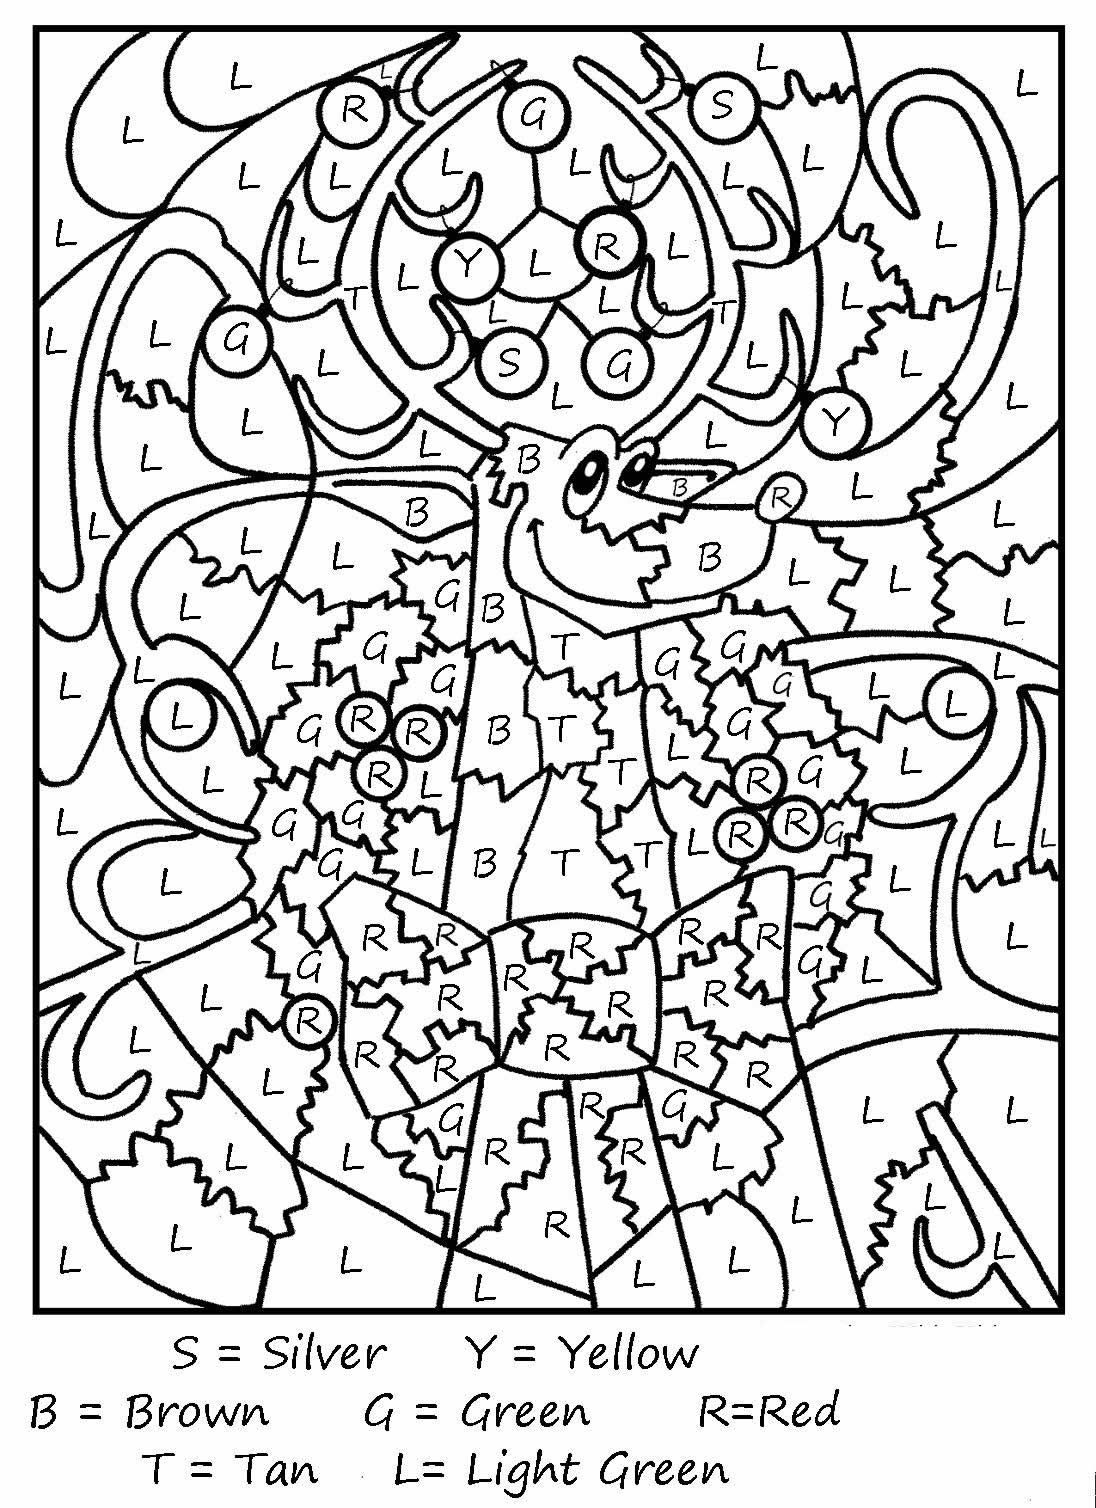 Kids christmas coloring and activity sheets - Color By Letter And Color By Number Coloring Pages Are Fun And Educational The Instructions Are Simple To Determine The Color Of Each Space